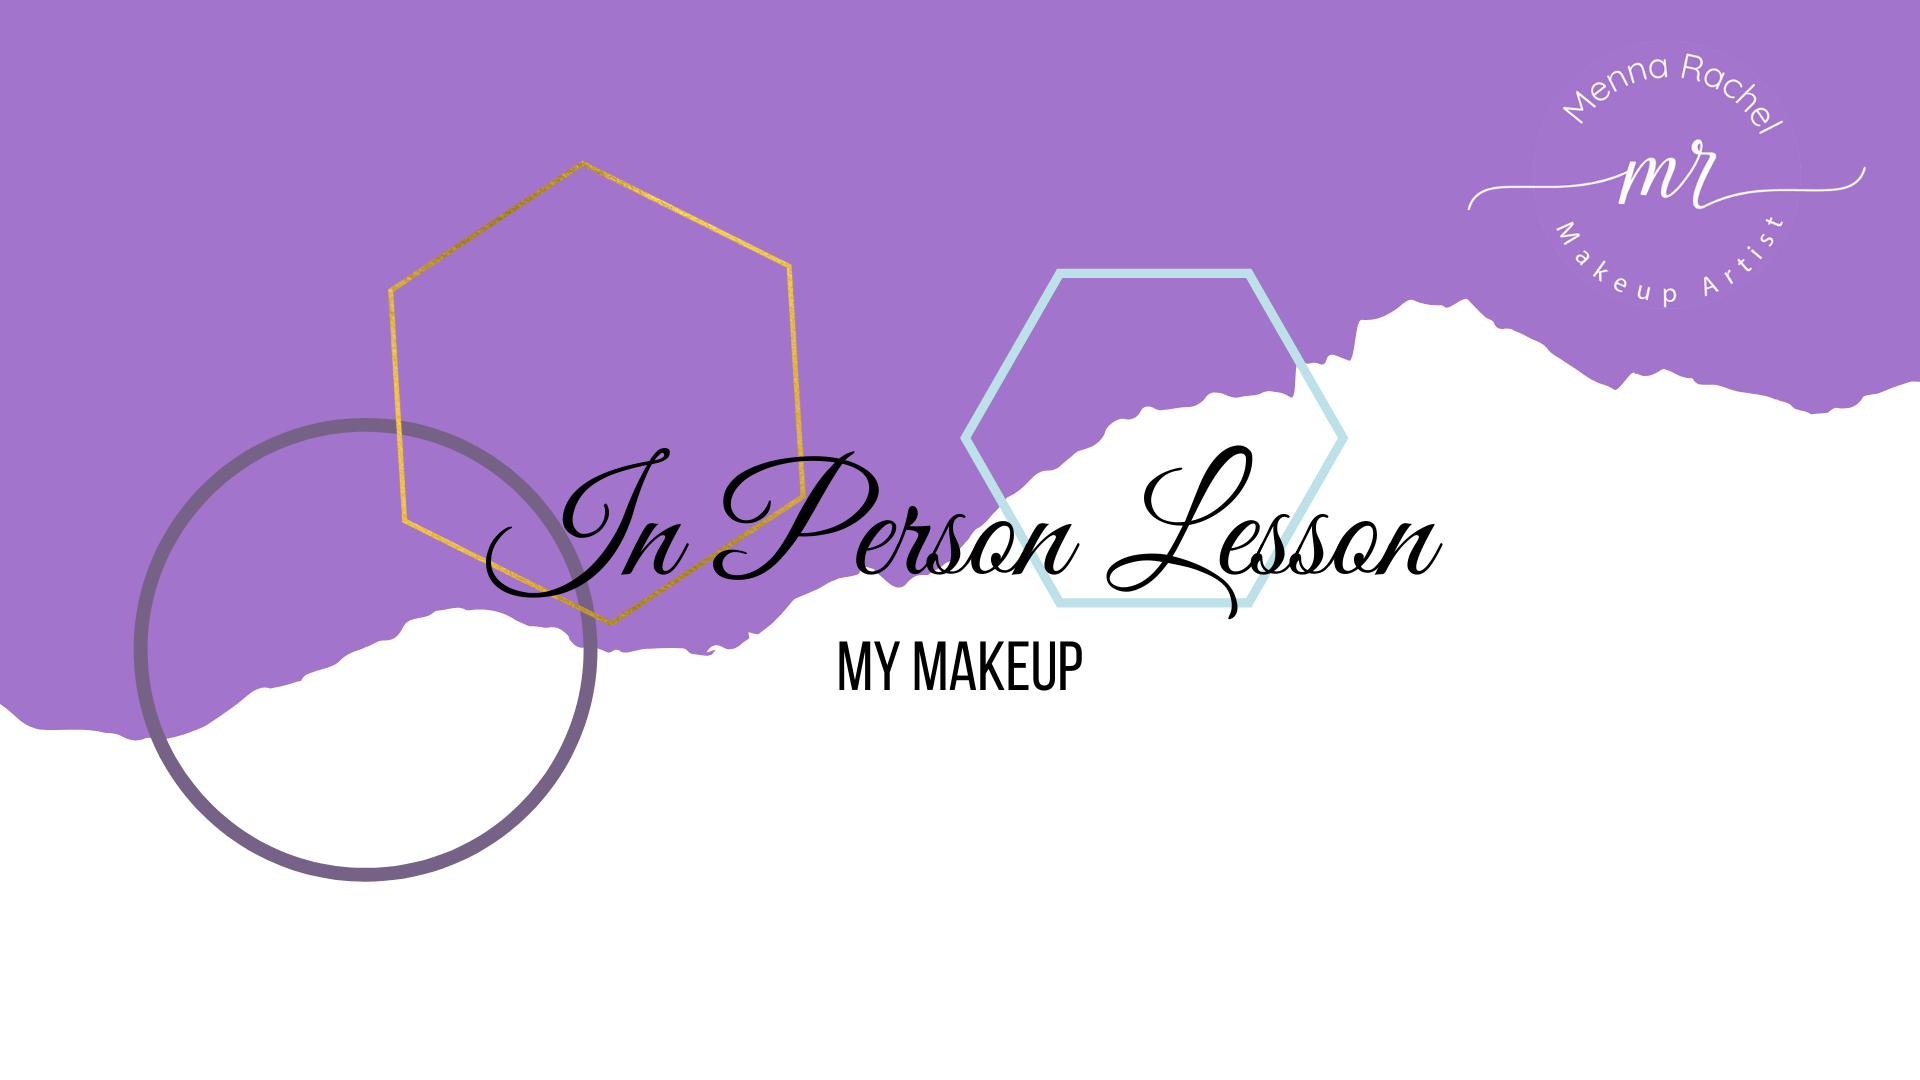 In Person Makeup Lesson - My Makeup